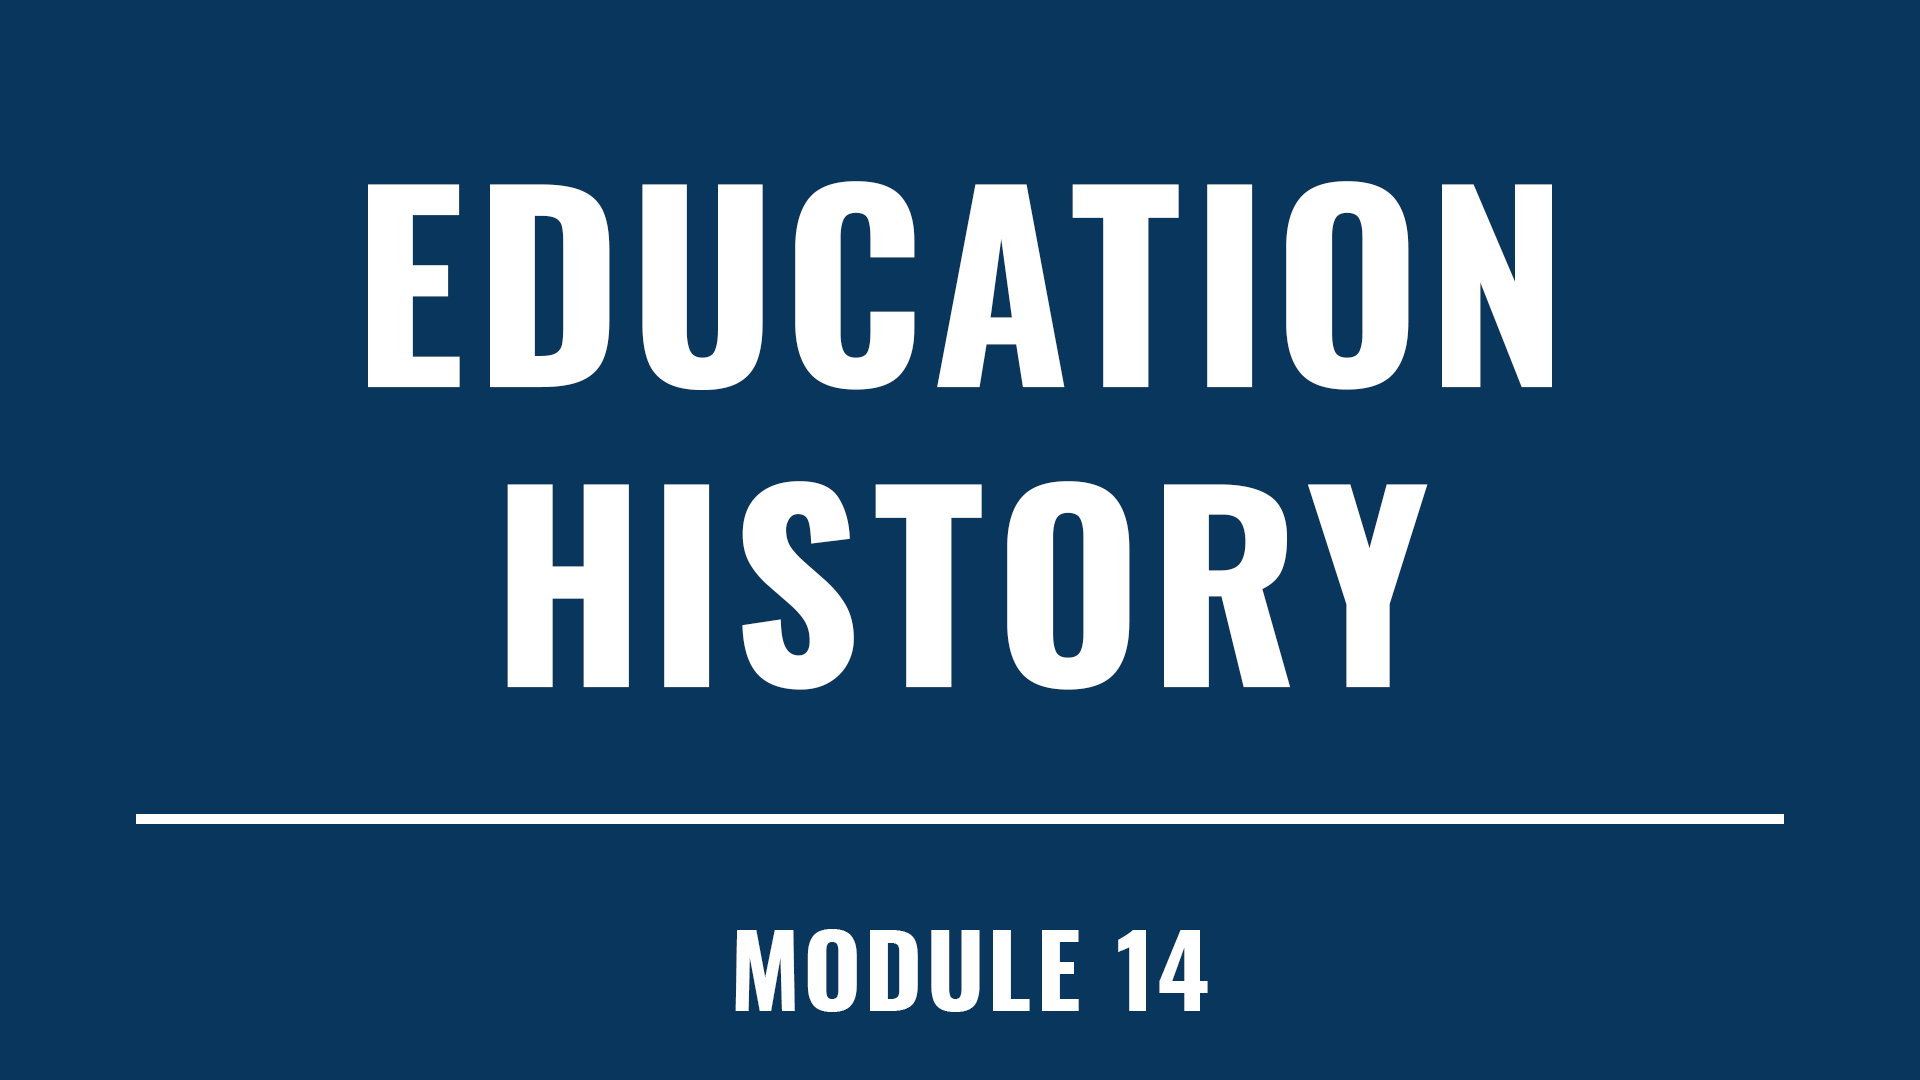 Education History